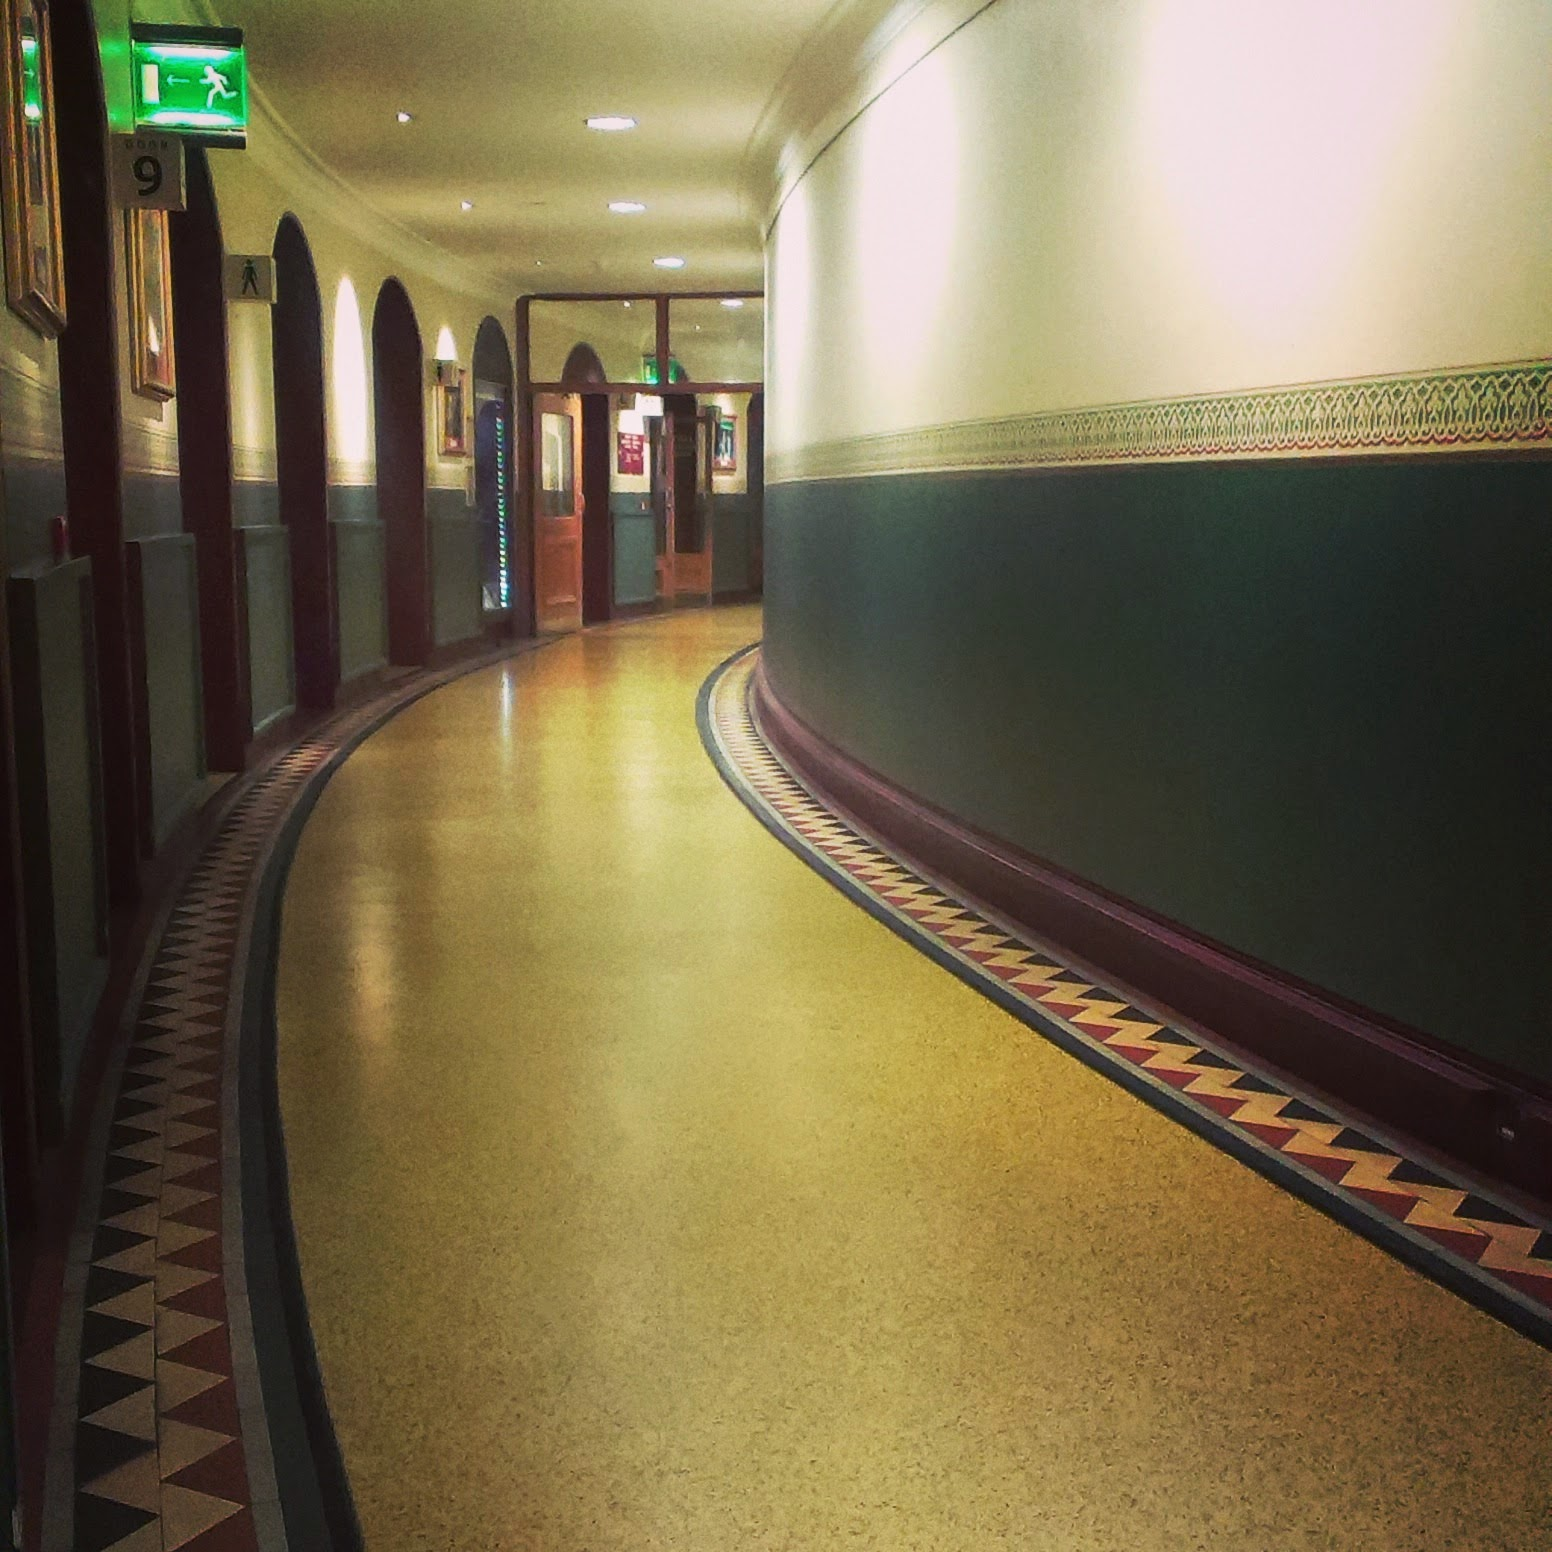 Royal Albert Hall corridors